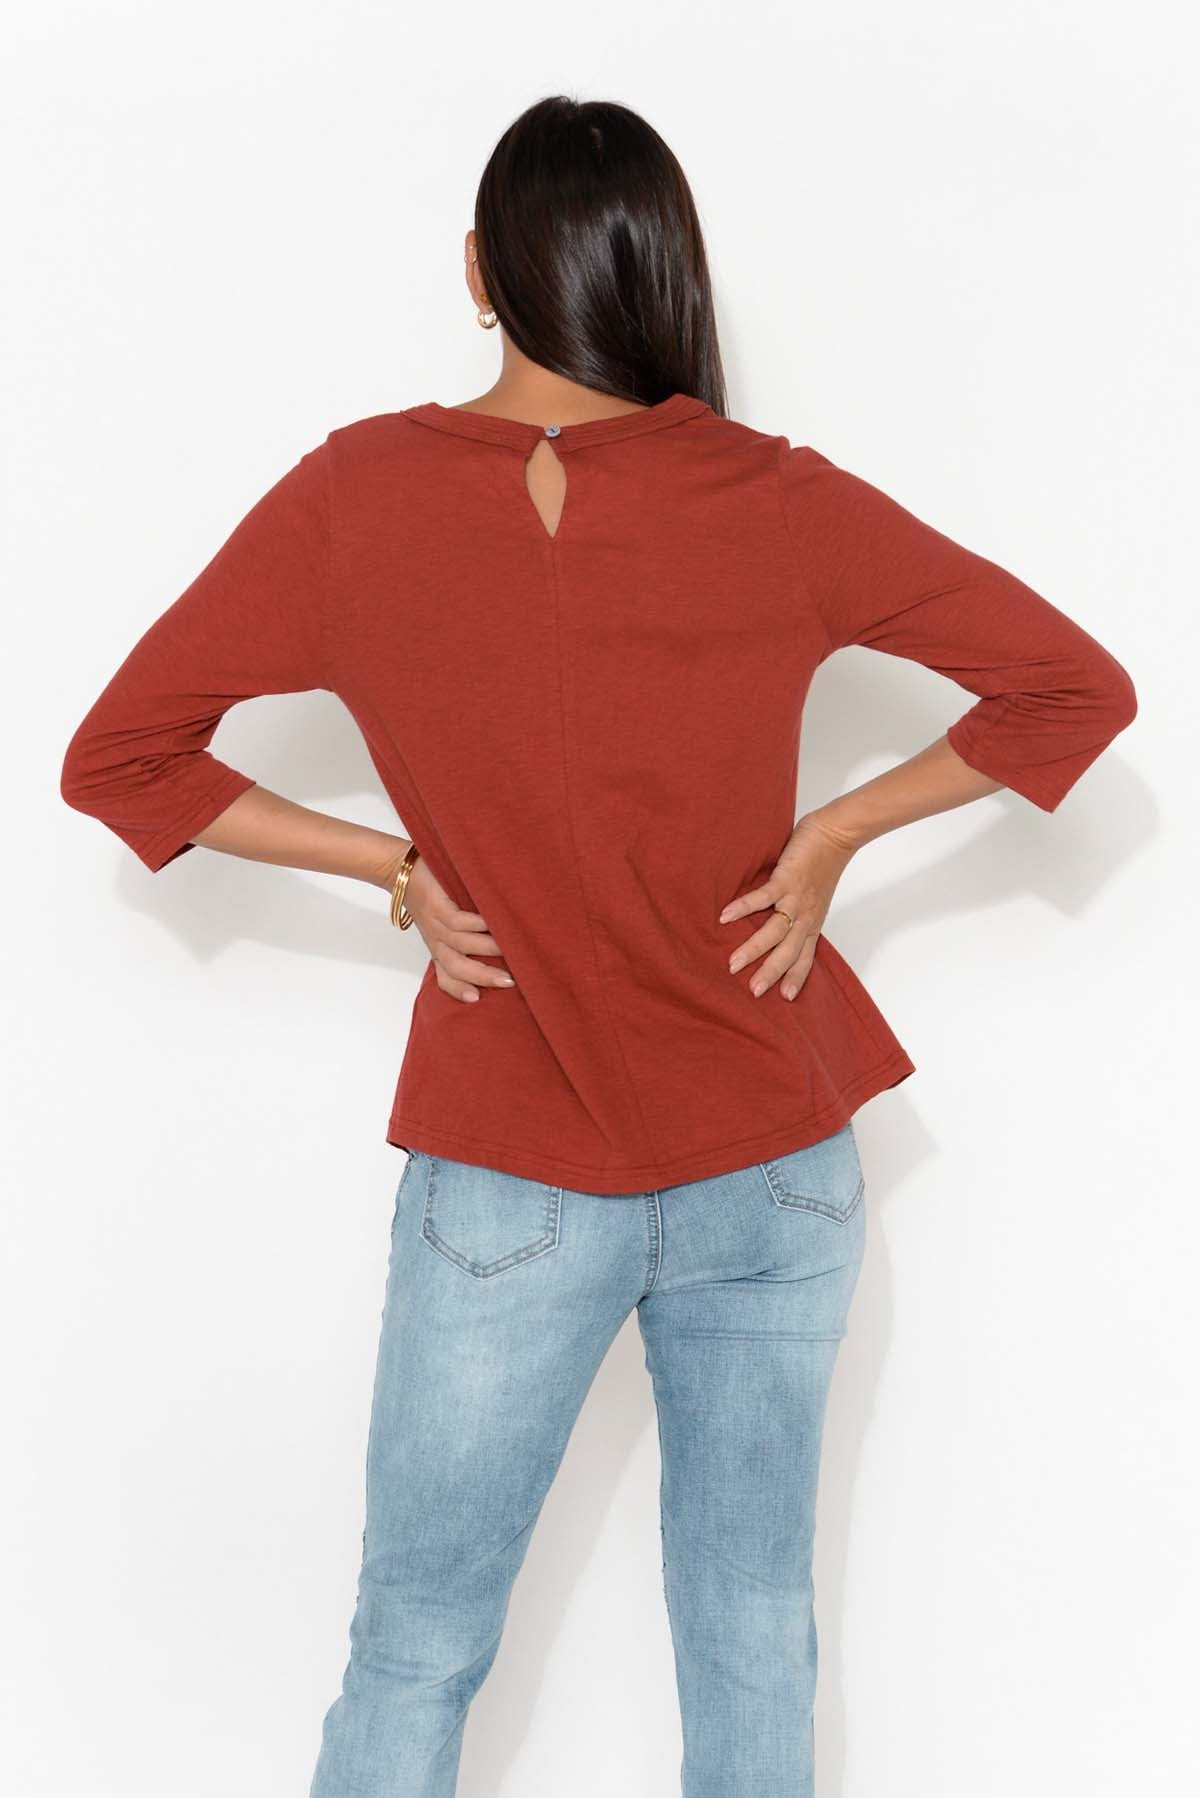 Jackie Red Sleeved Cotton Top